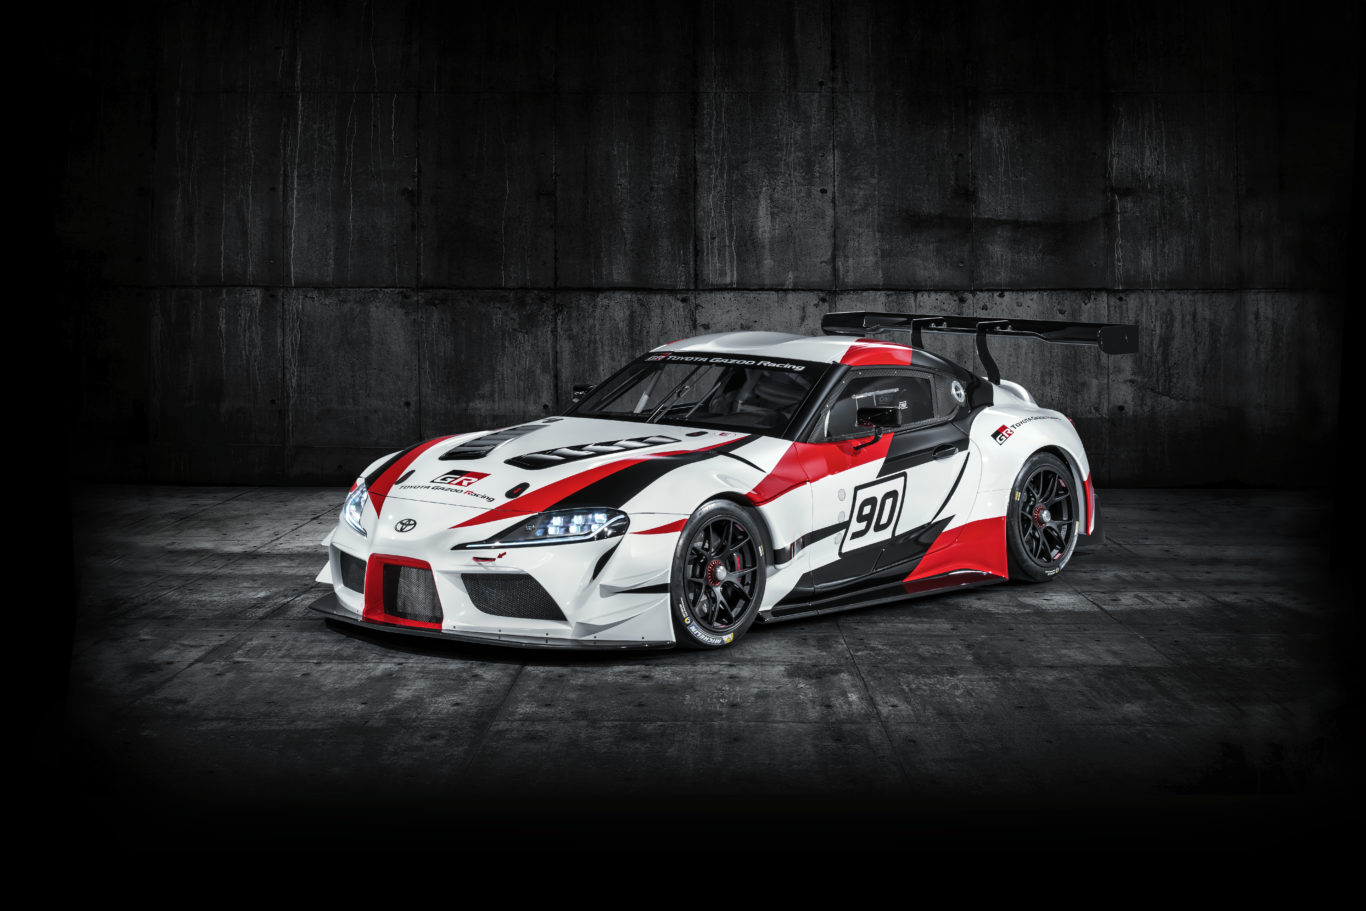 The new Toyota Supra shares many parts with the BMW Z4